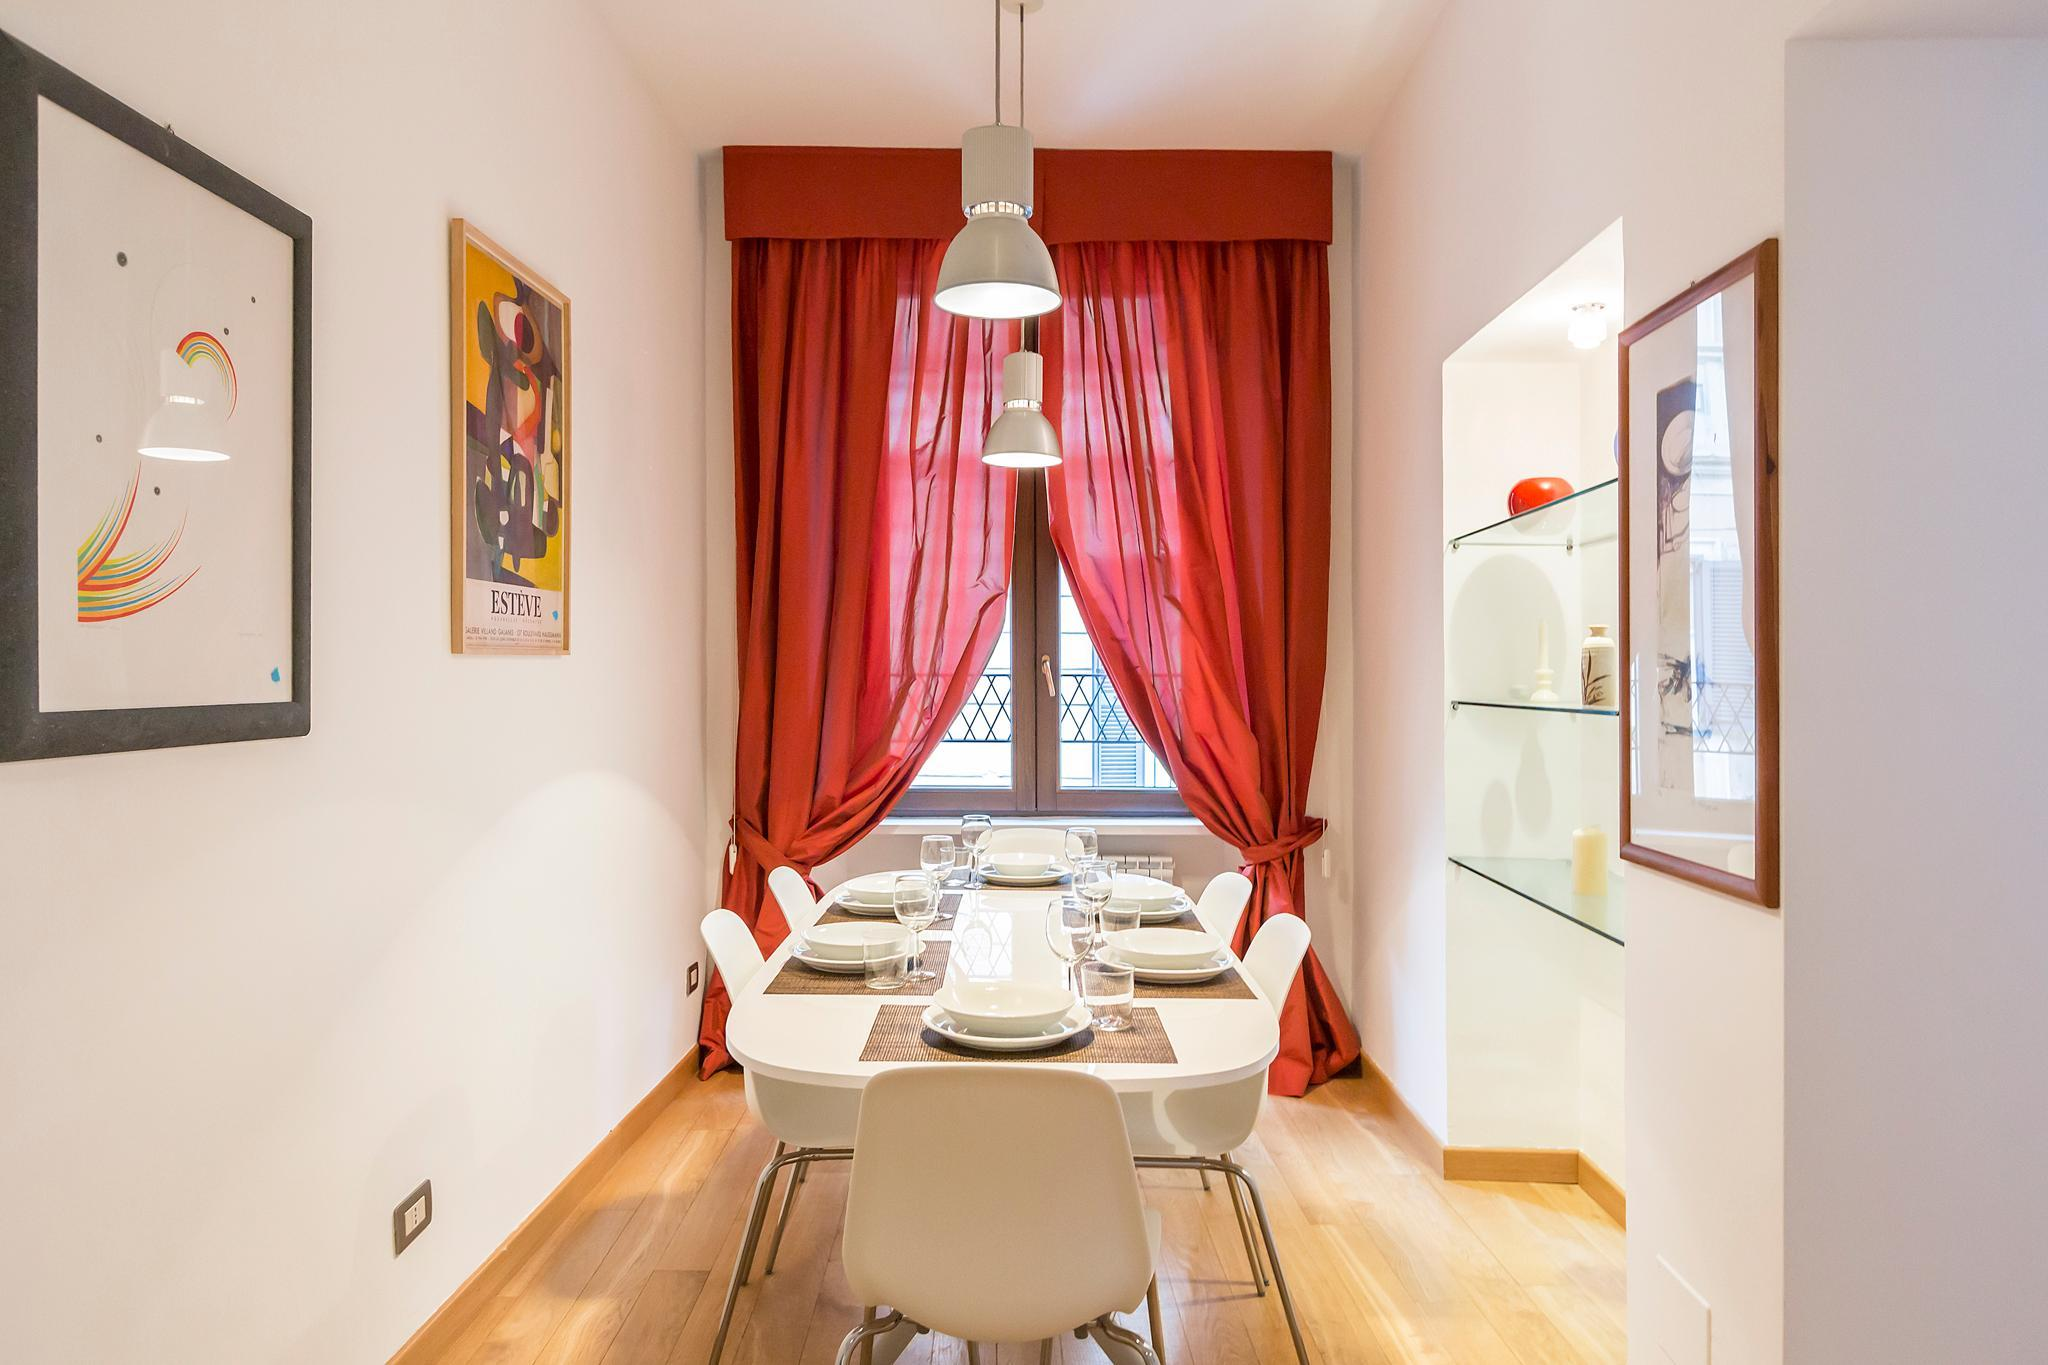 Stylish 3 BR in the center of Via Tortona